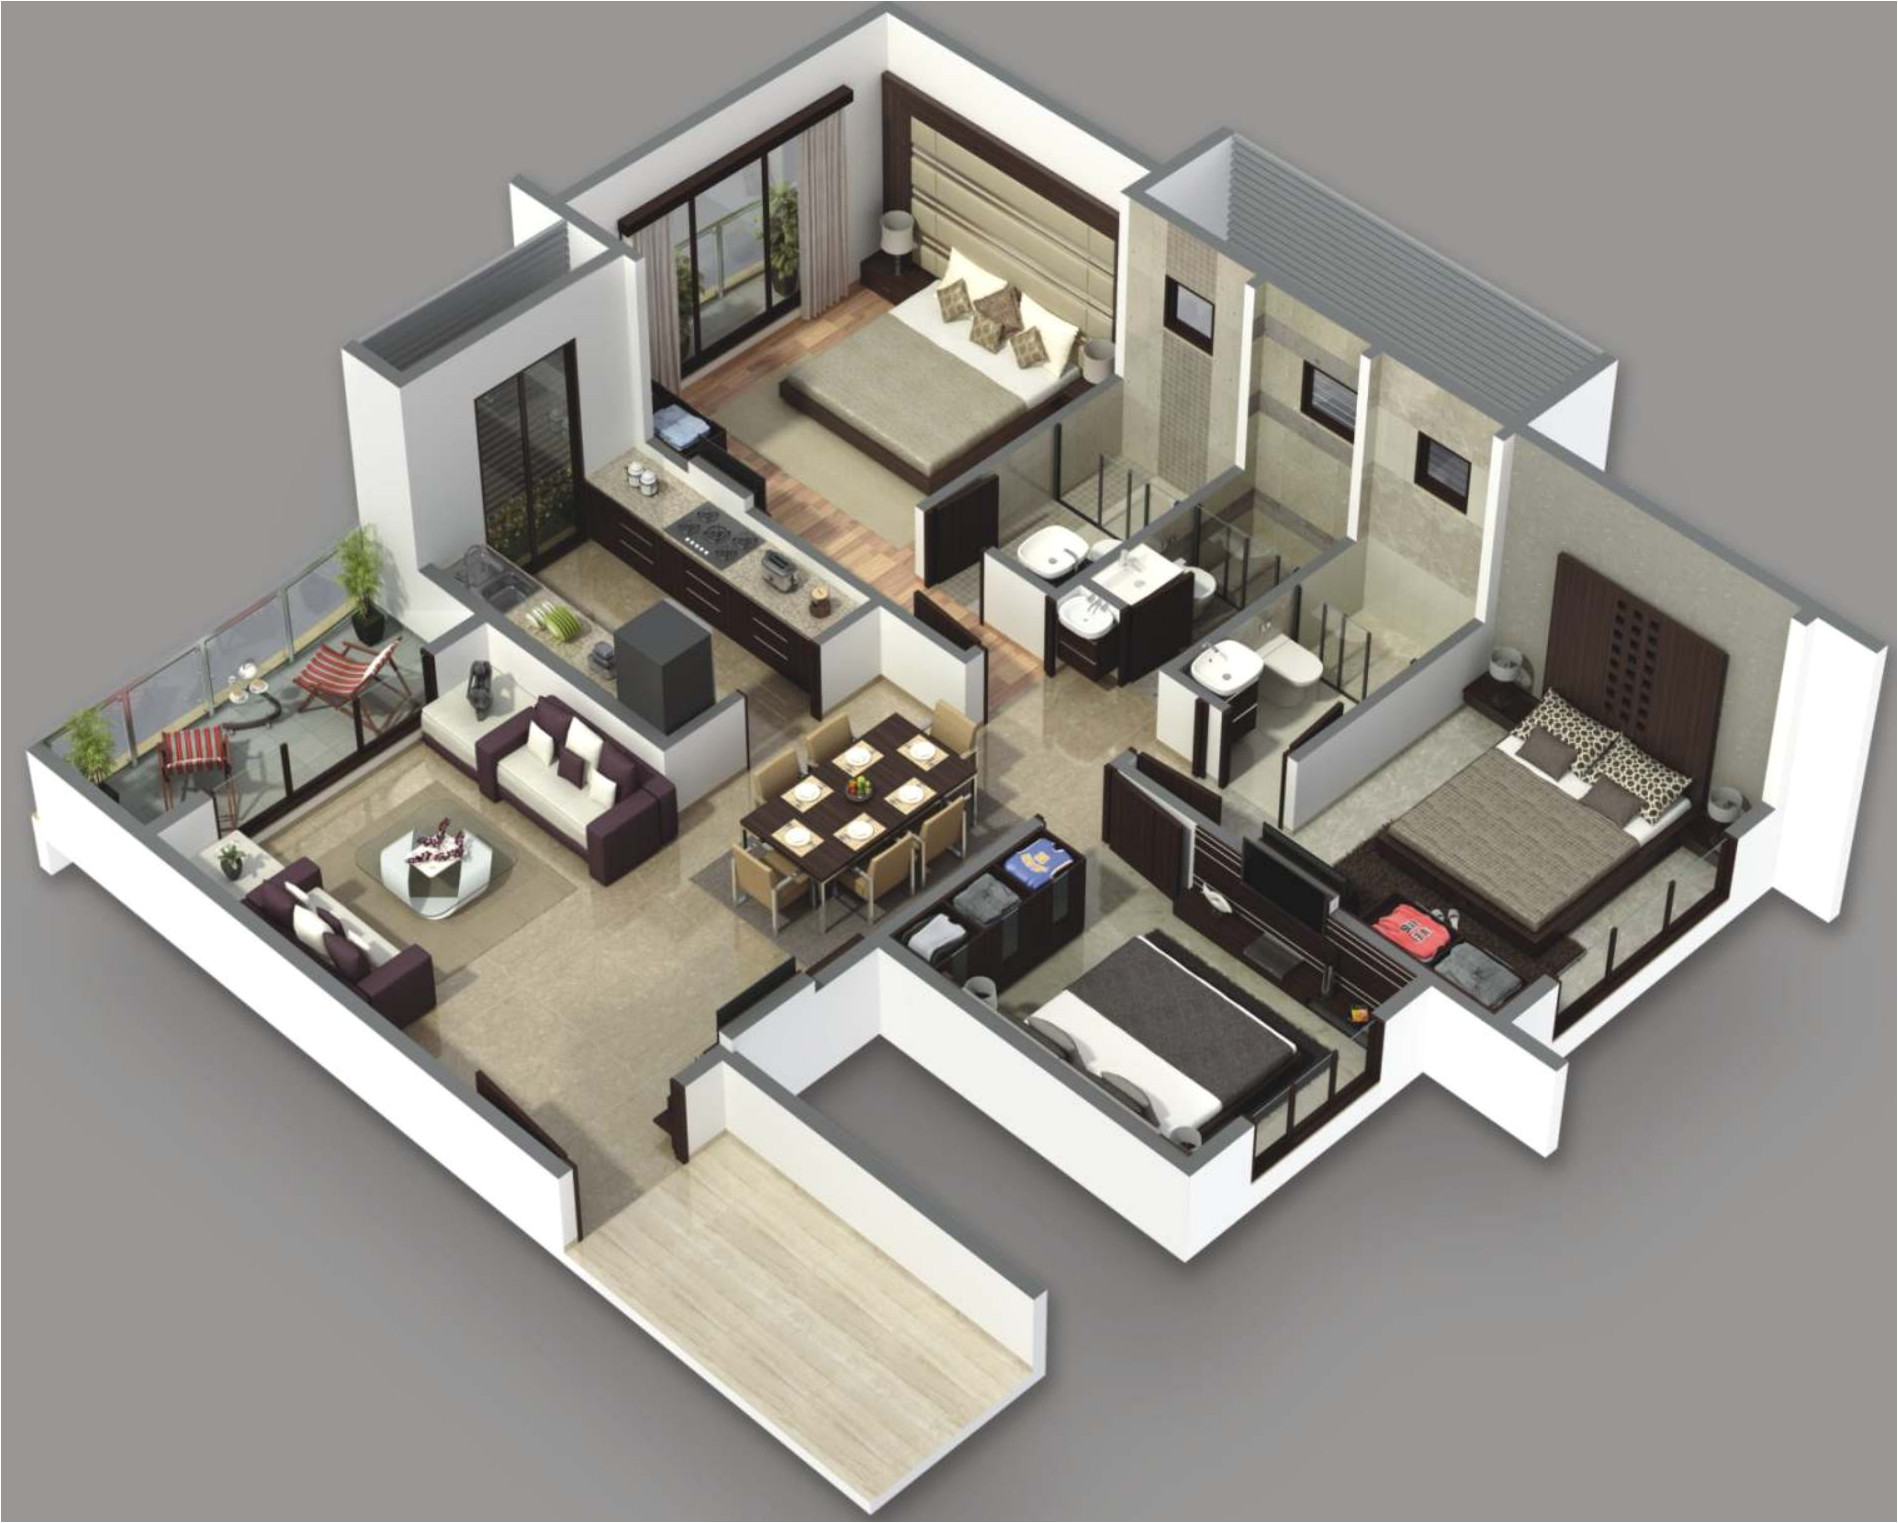 3 bedroom house plans 3d design 3